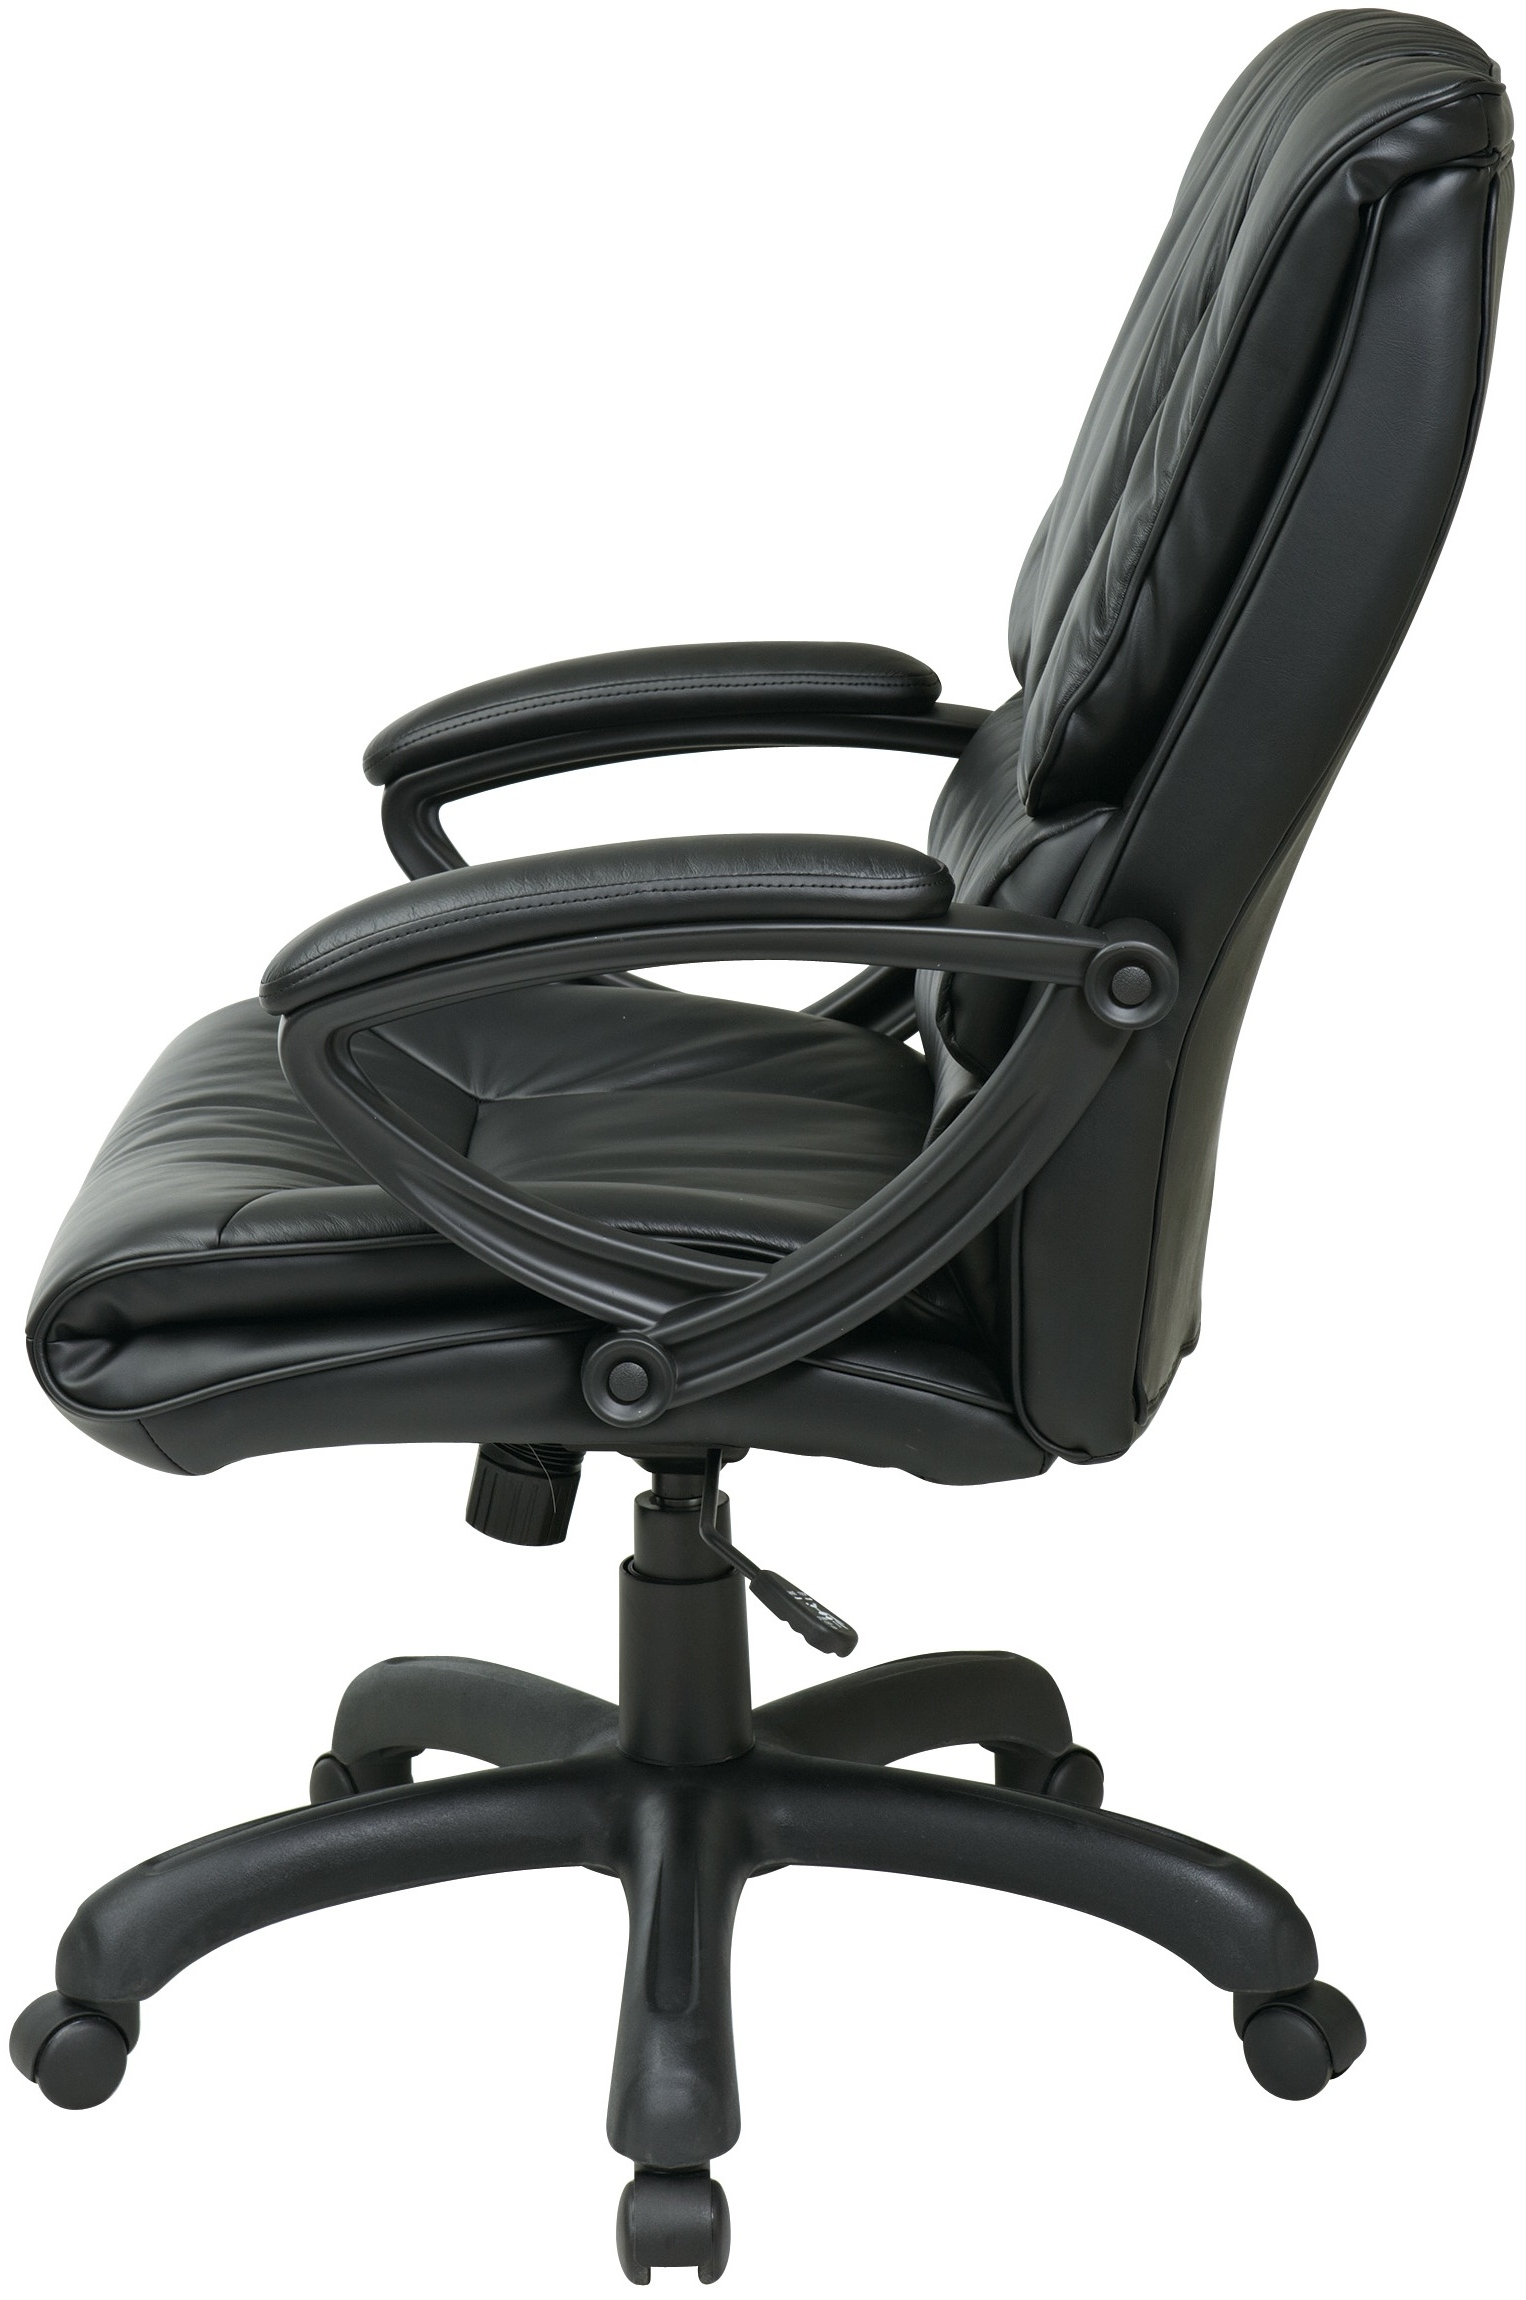 Executive Office Side Chairs Pertaining To Current Ex6710 Office Star – High Back Executive Chair With Loop Arms (Gallery 16 of 20)